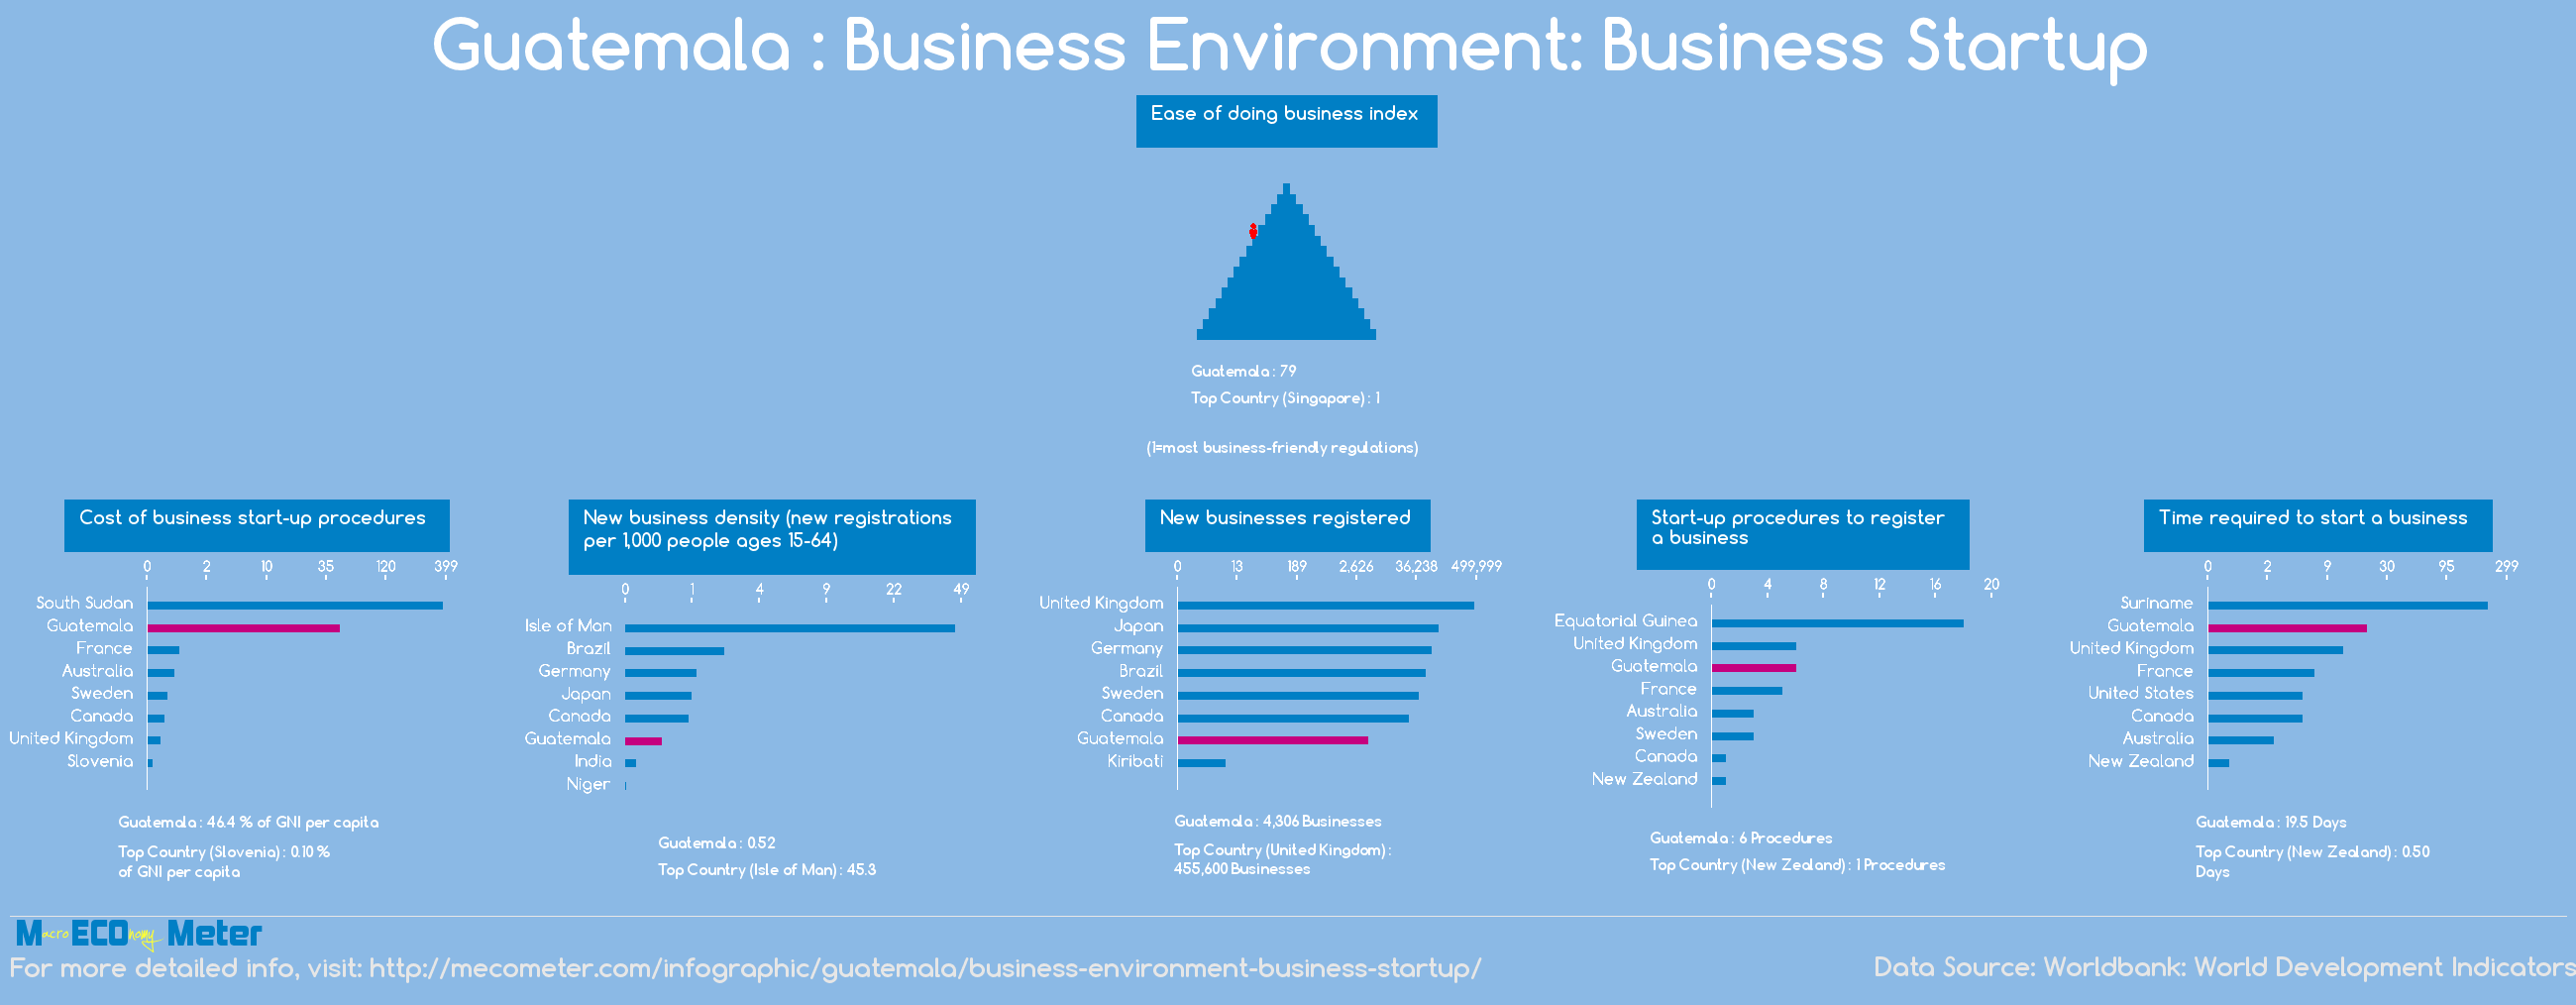 Guatemala : Business Environment: Business Startup